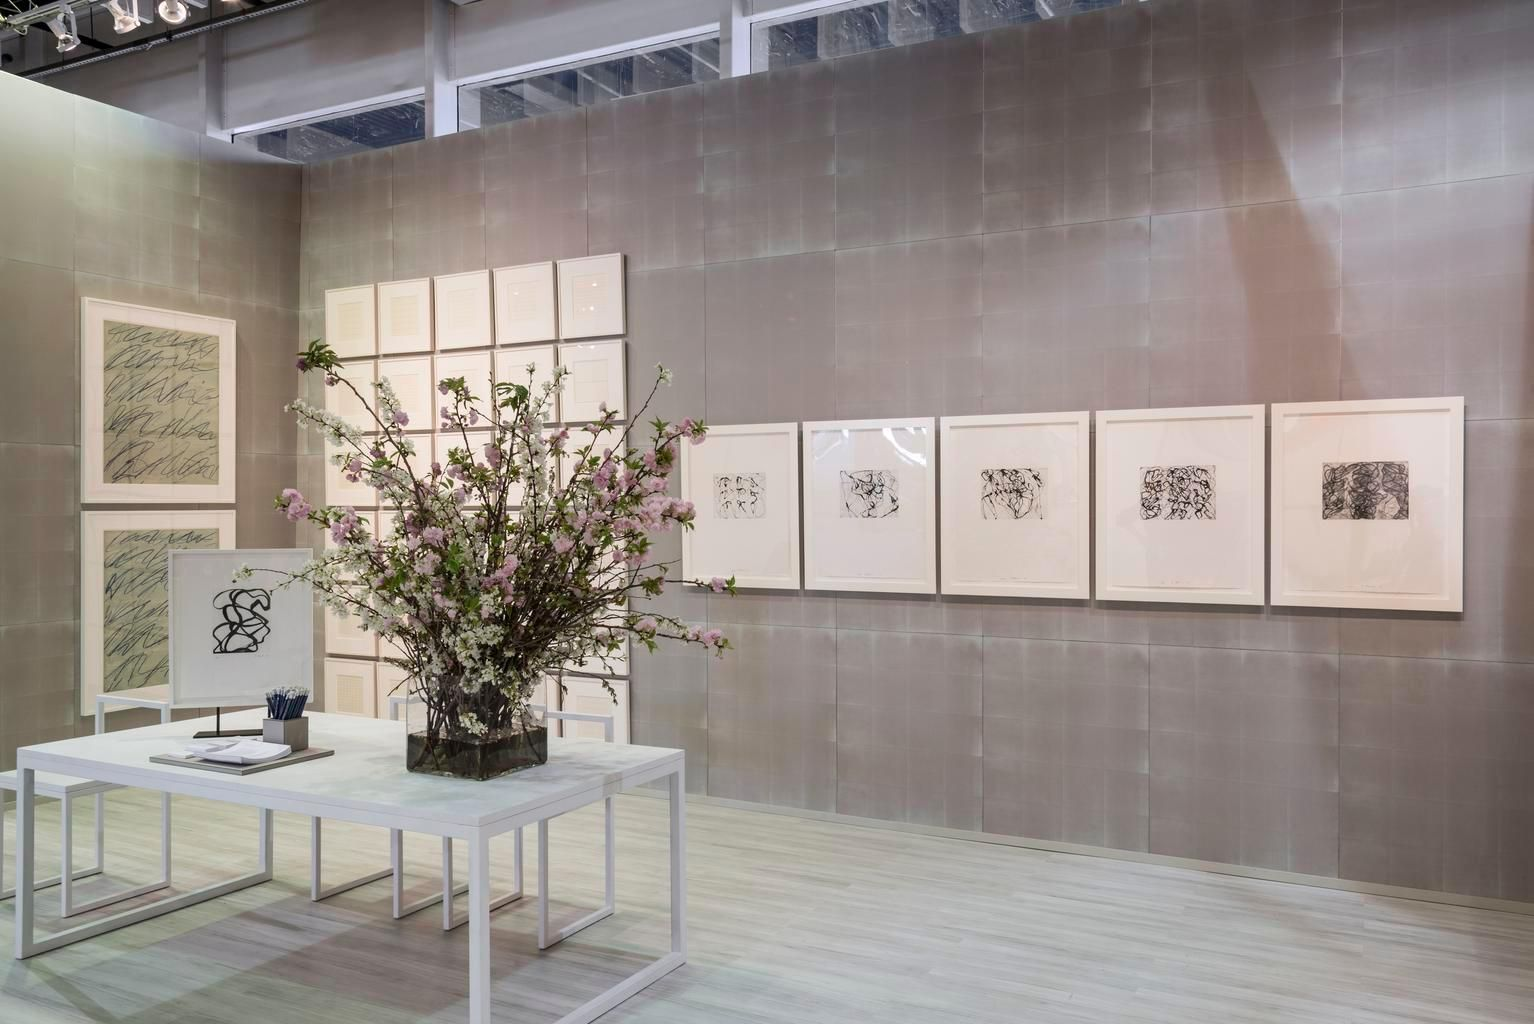 The Armory Show 2016 at Susan Sheehan Gallery